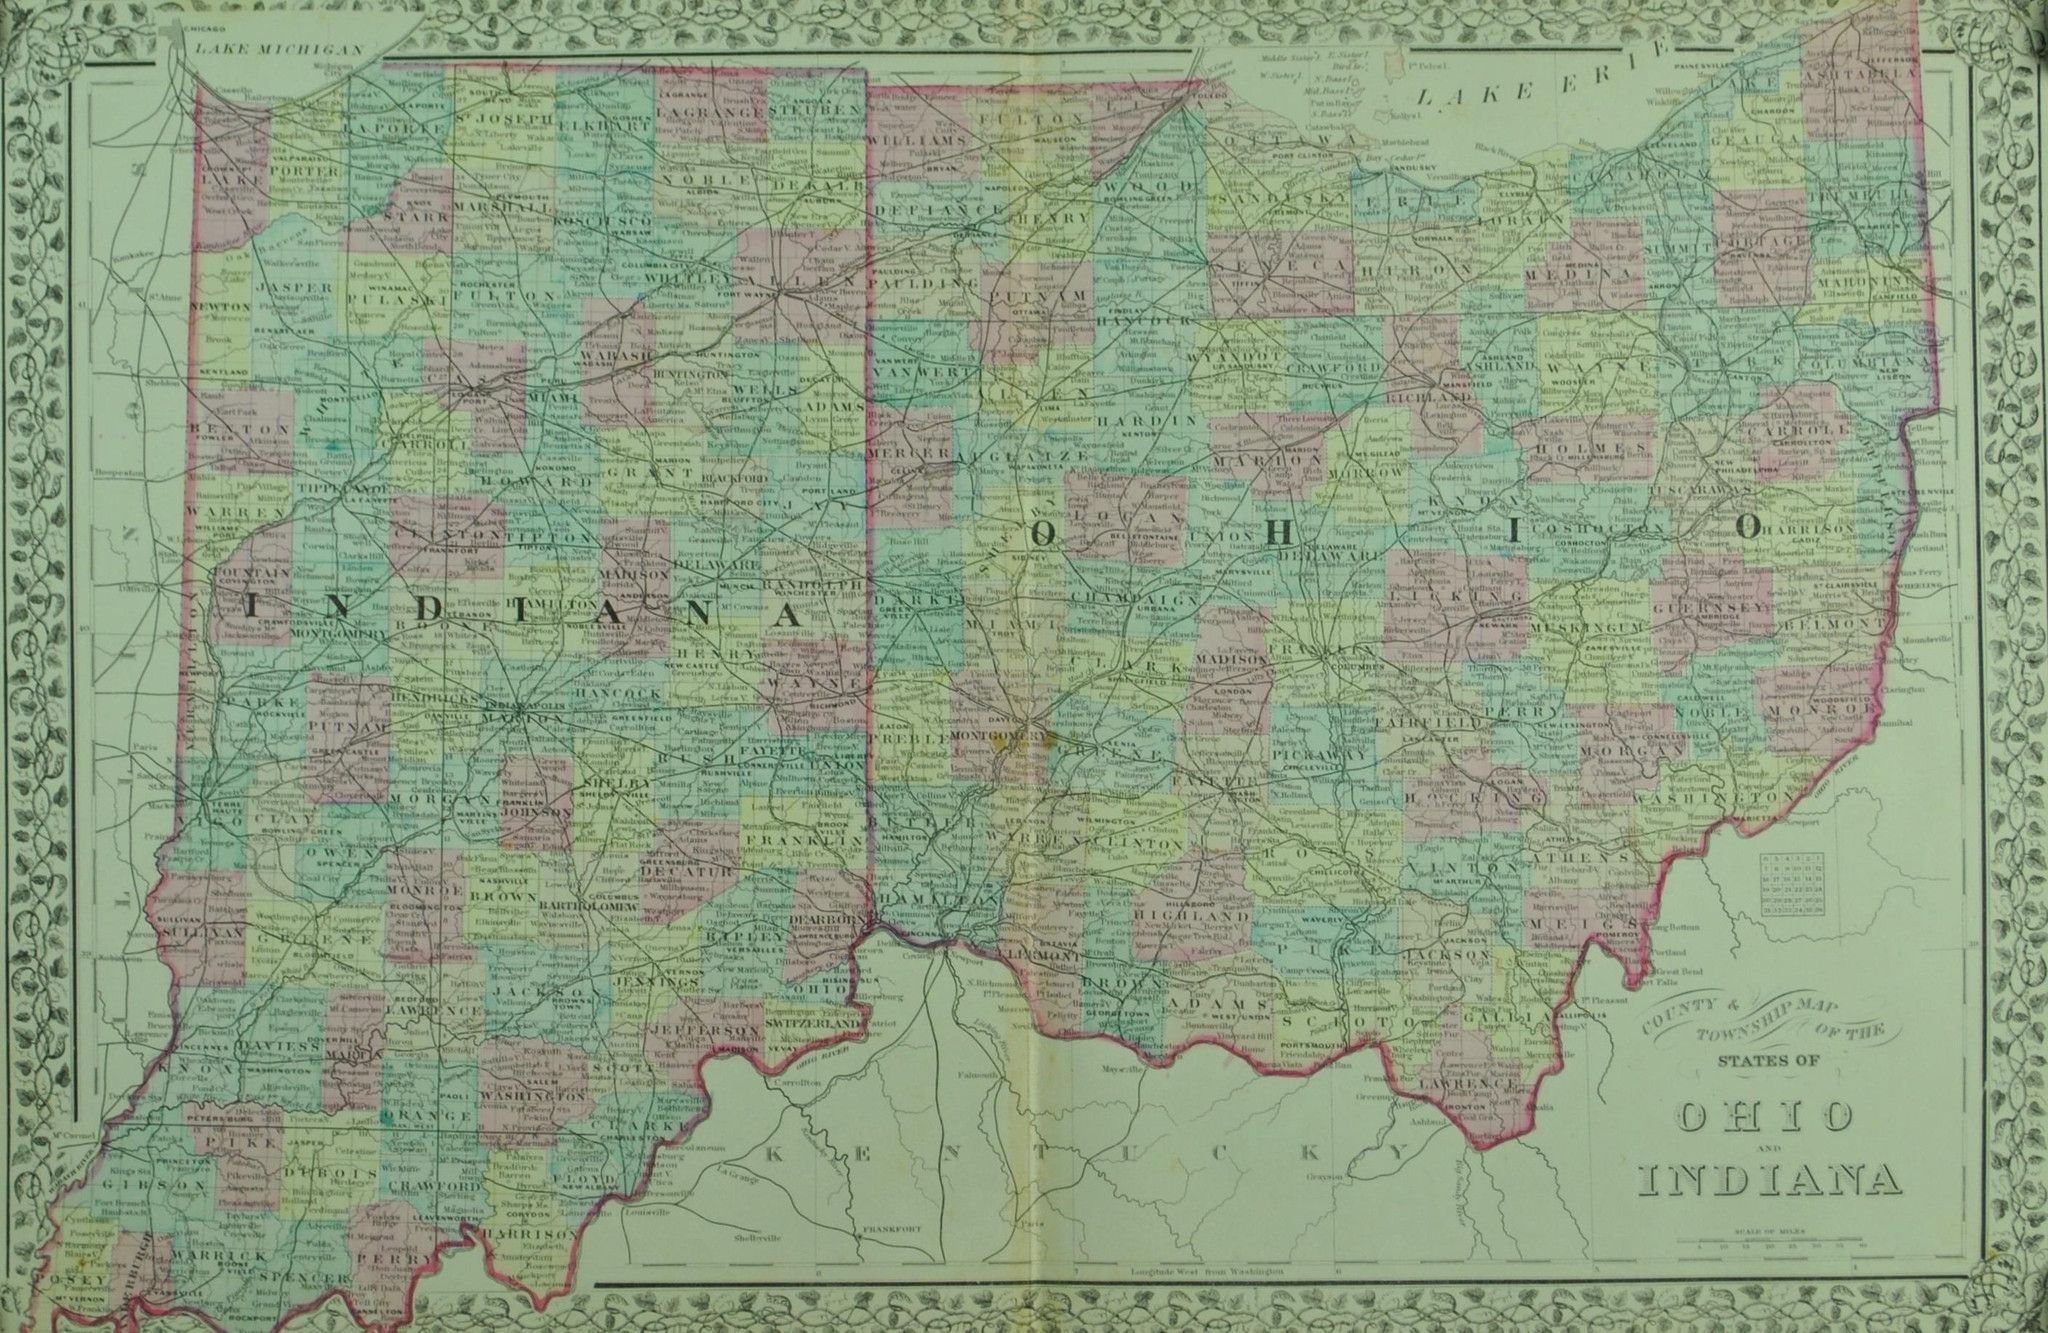 1881 County and Township Map of the States of Ohio and